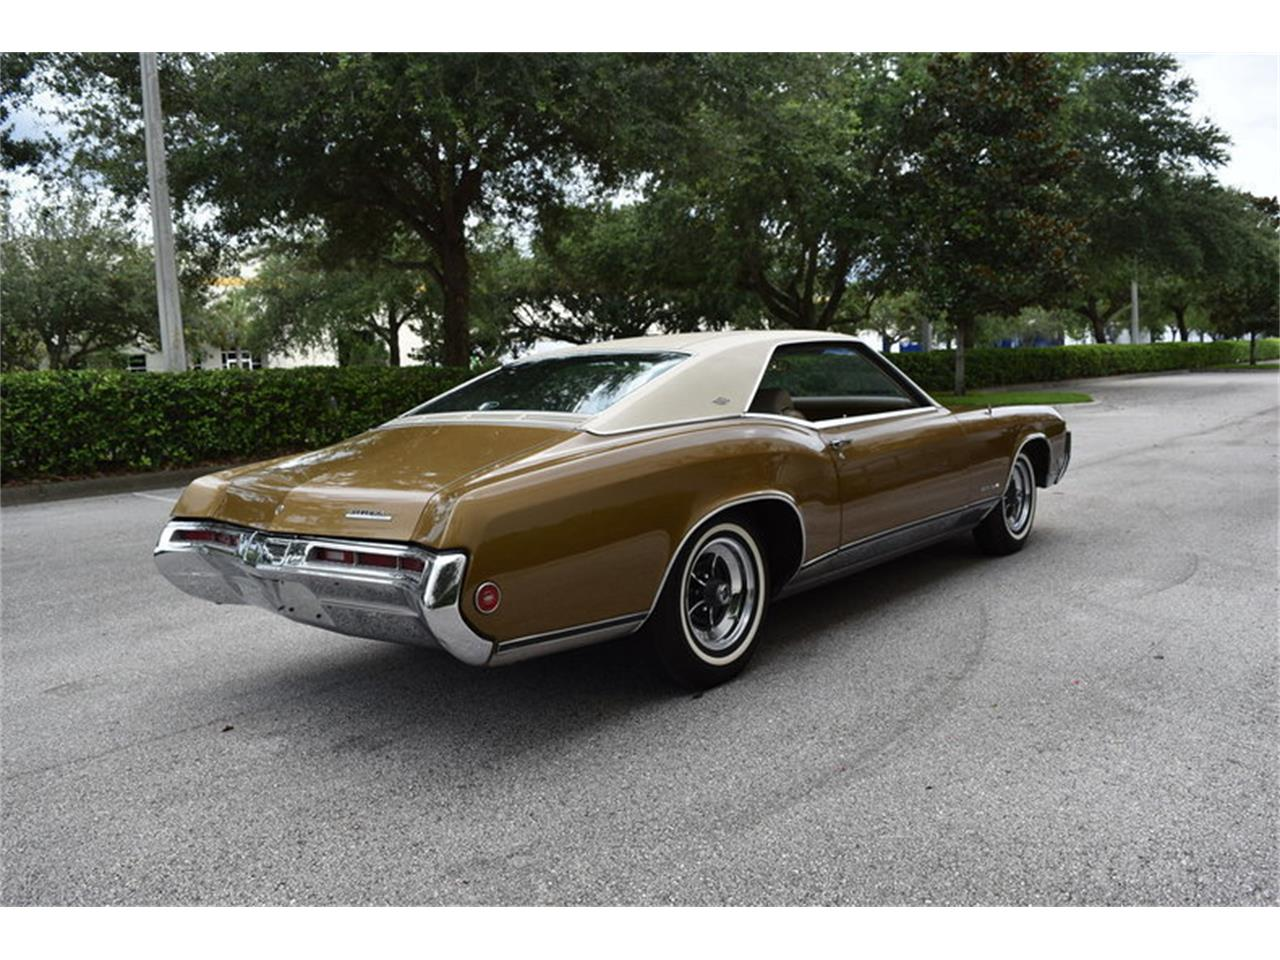 Large Picture of Classic '69 Buick Riviera located in Zephyrhills Florida Auction Vehicle Offered by SunCoast Auto Auction - ONHO